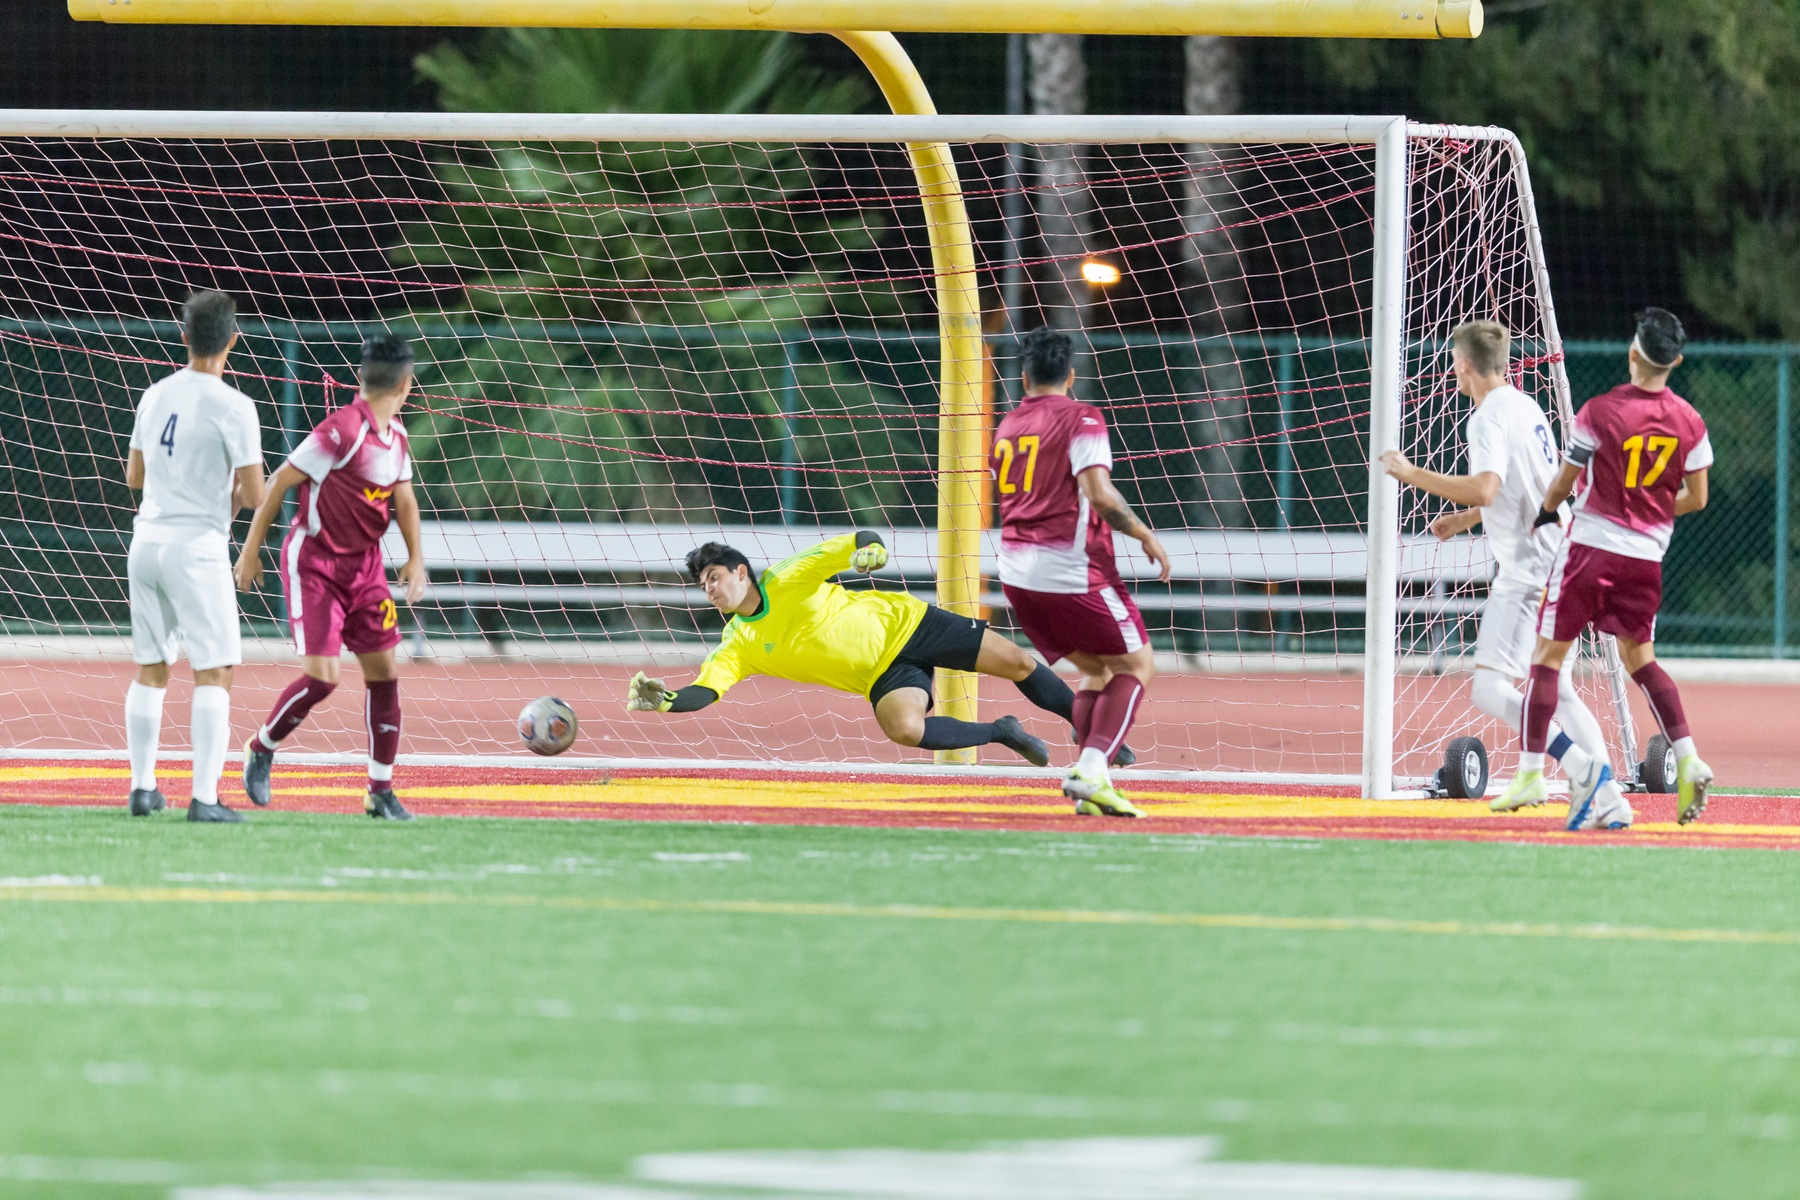 GCC goalie Tejada leads Men's Soccer to two shutout wins and improves to 4-4 this season